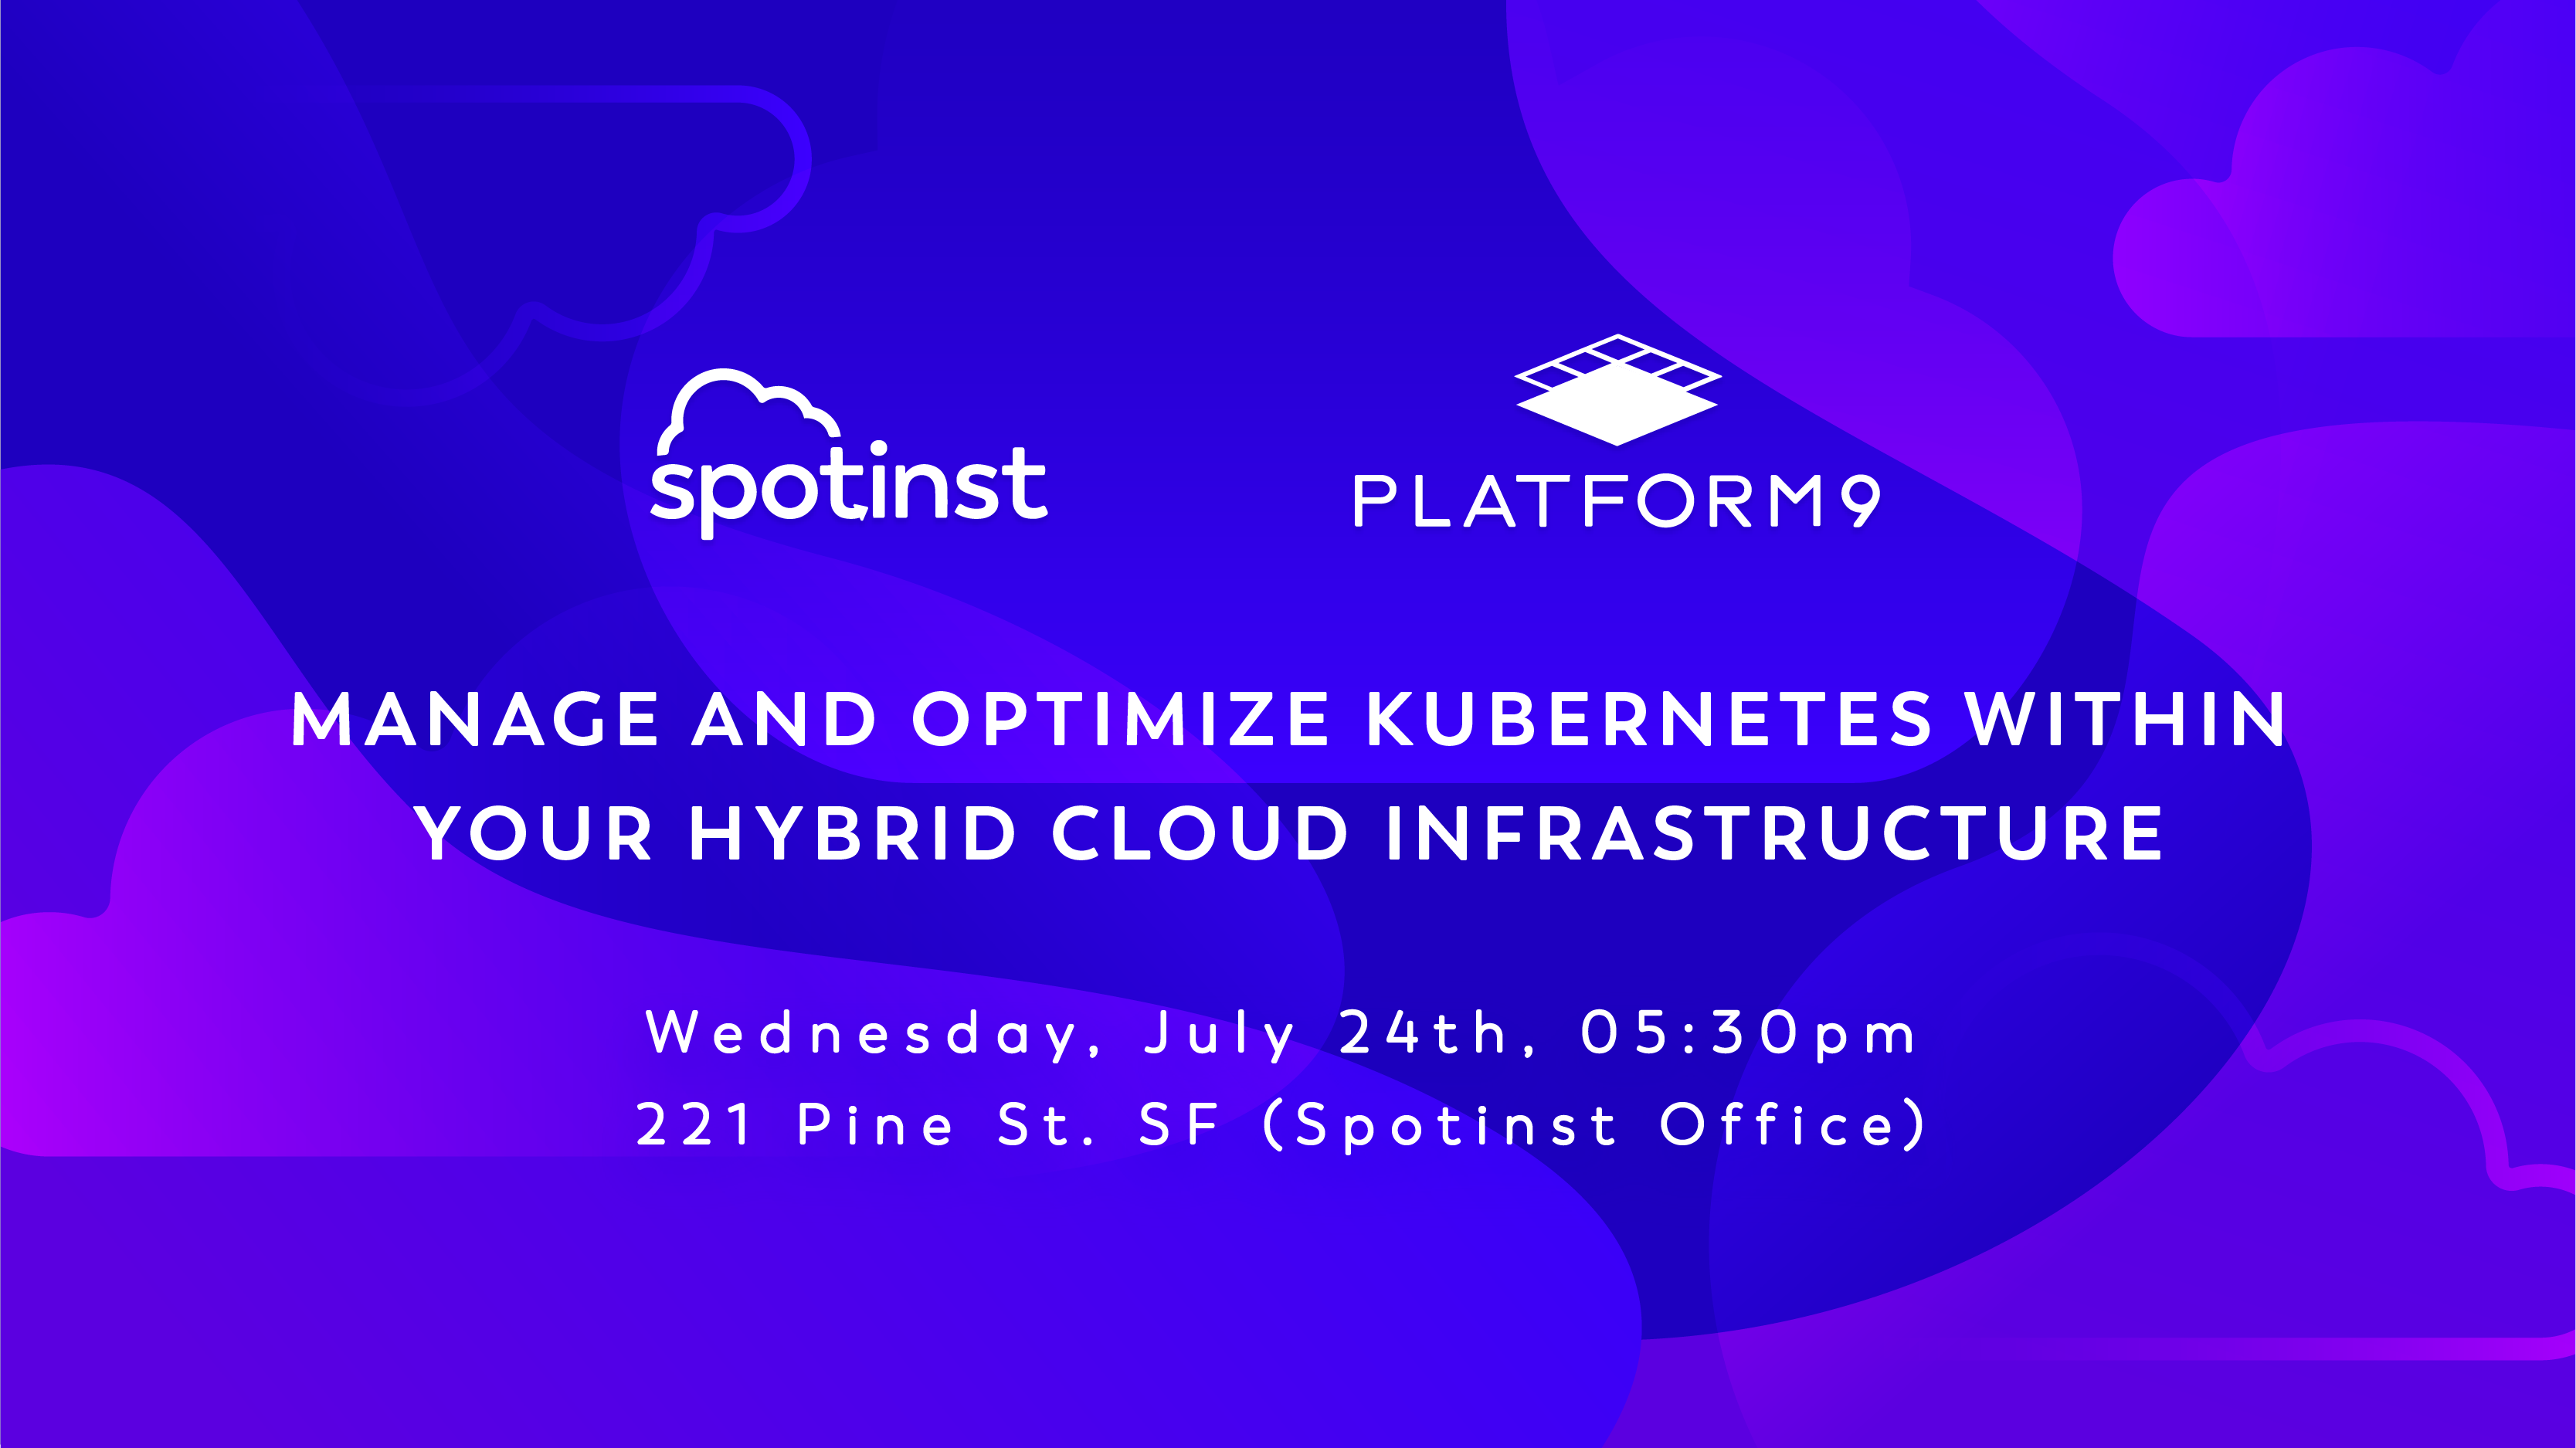 Manage and Optimize Kubernetes within your Hybrid Cloud Infrastructure